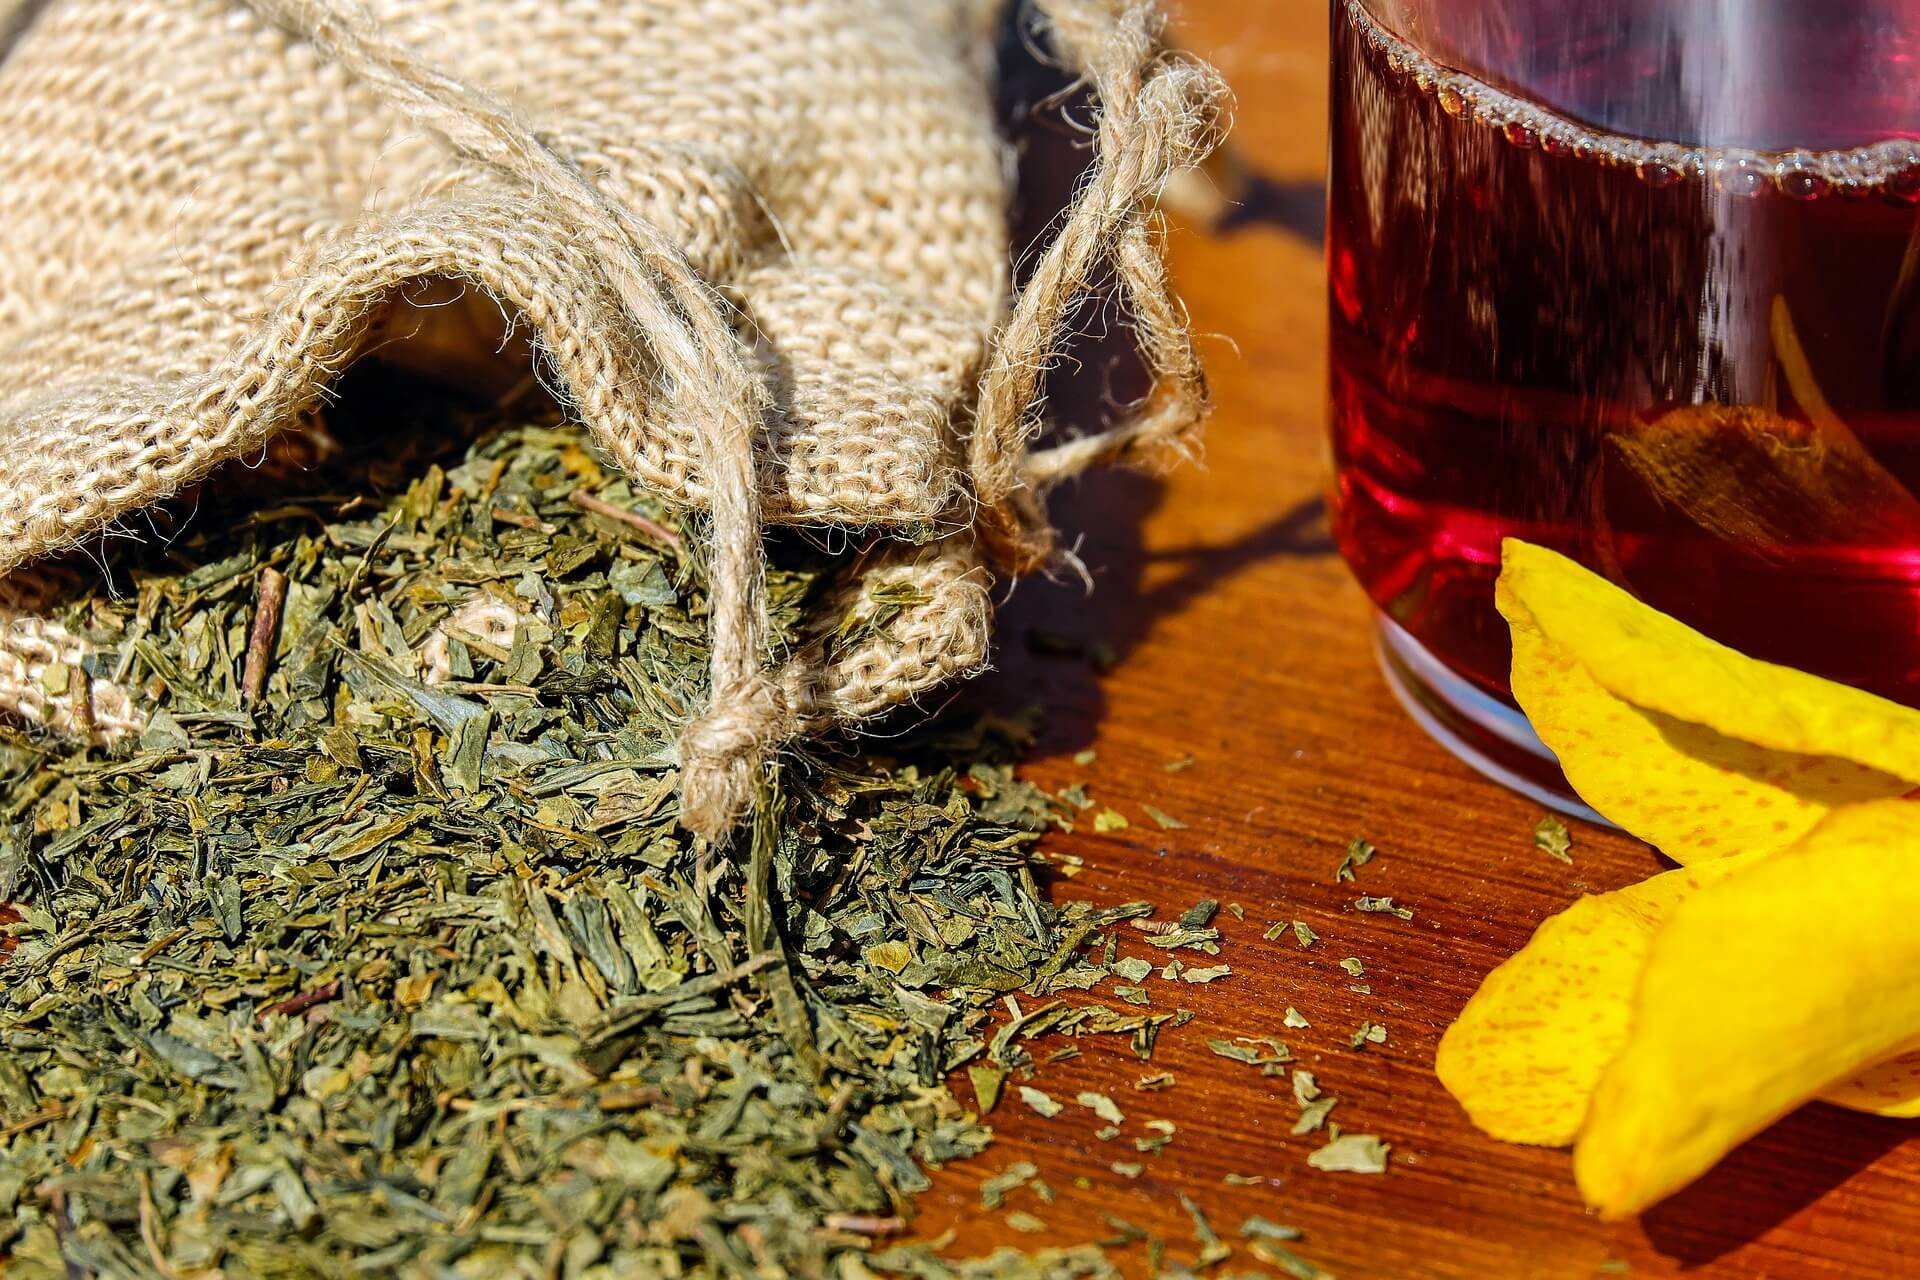 low-THC cannabis leaves that can be used in tea or for smoking